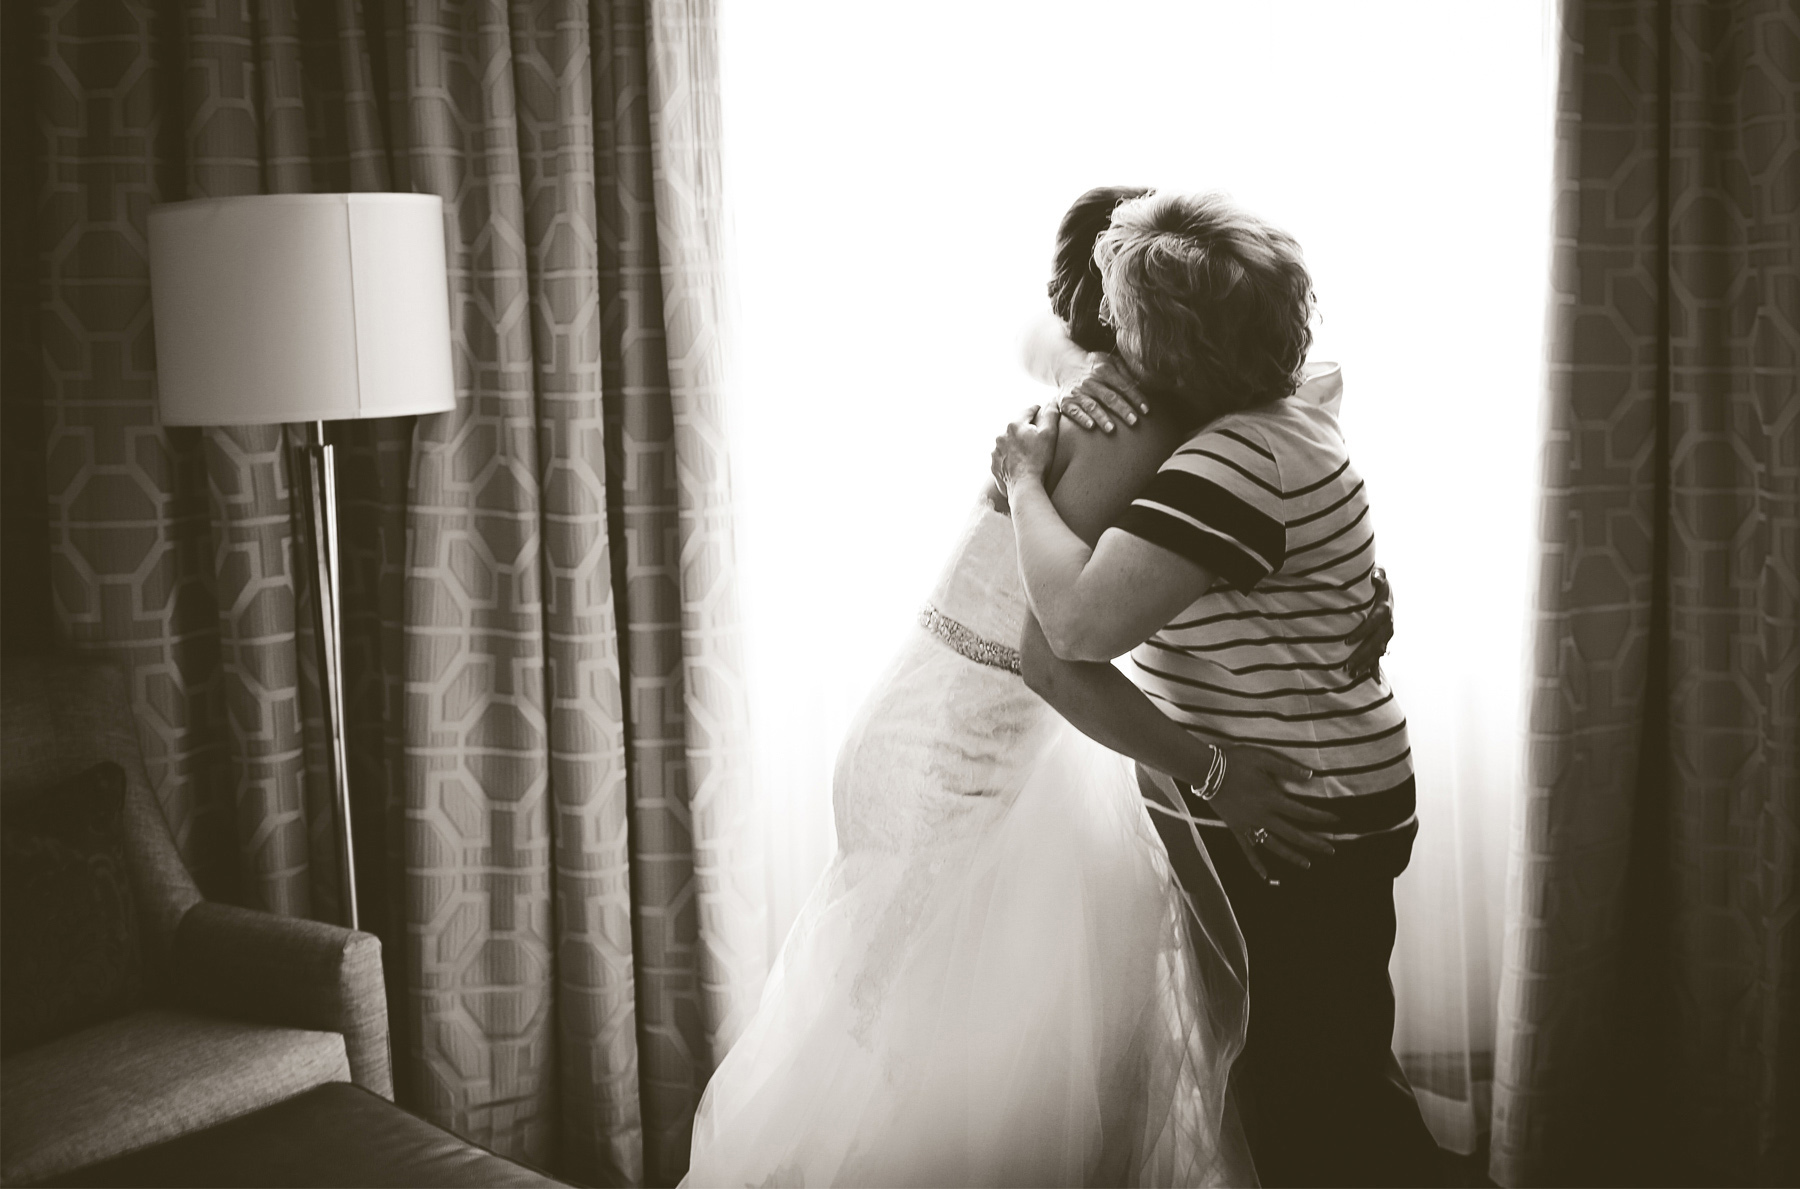 02-Minneapolis-Minnesota-Wedding-Photography-by-Vick-Photography-Downtown-Bride-Dress-Megan-and-Andrew.jpg